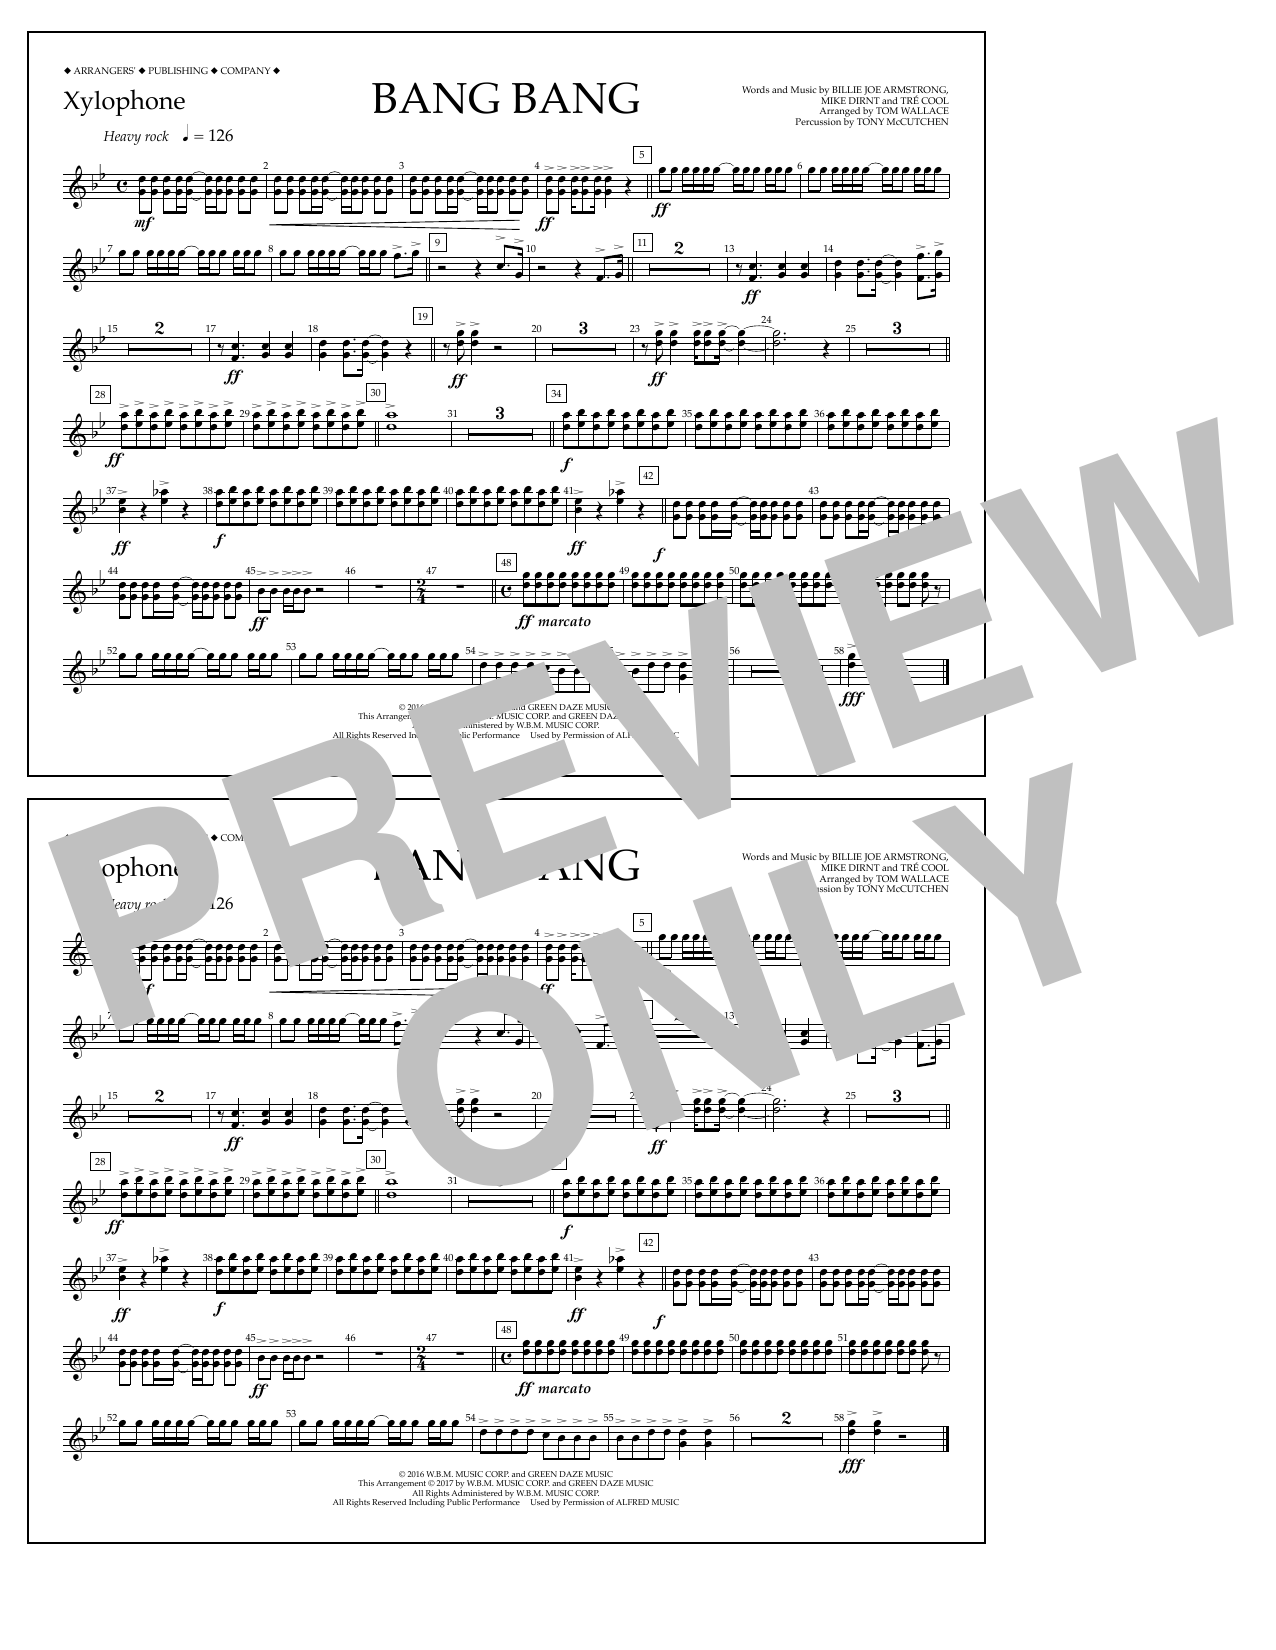 Bang Bang - Xylophone Sheet Music